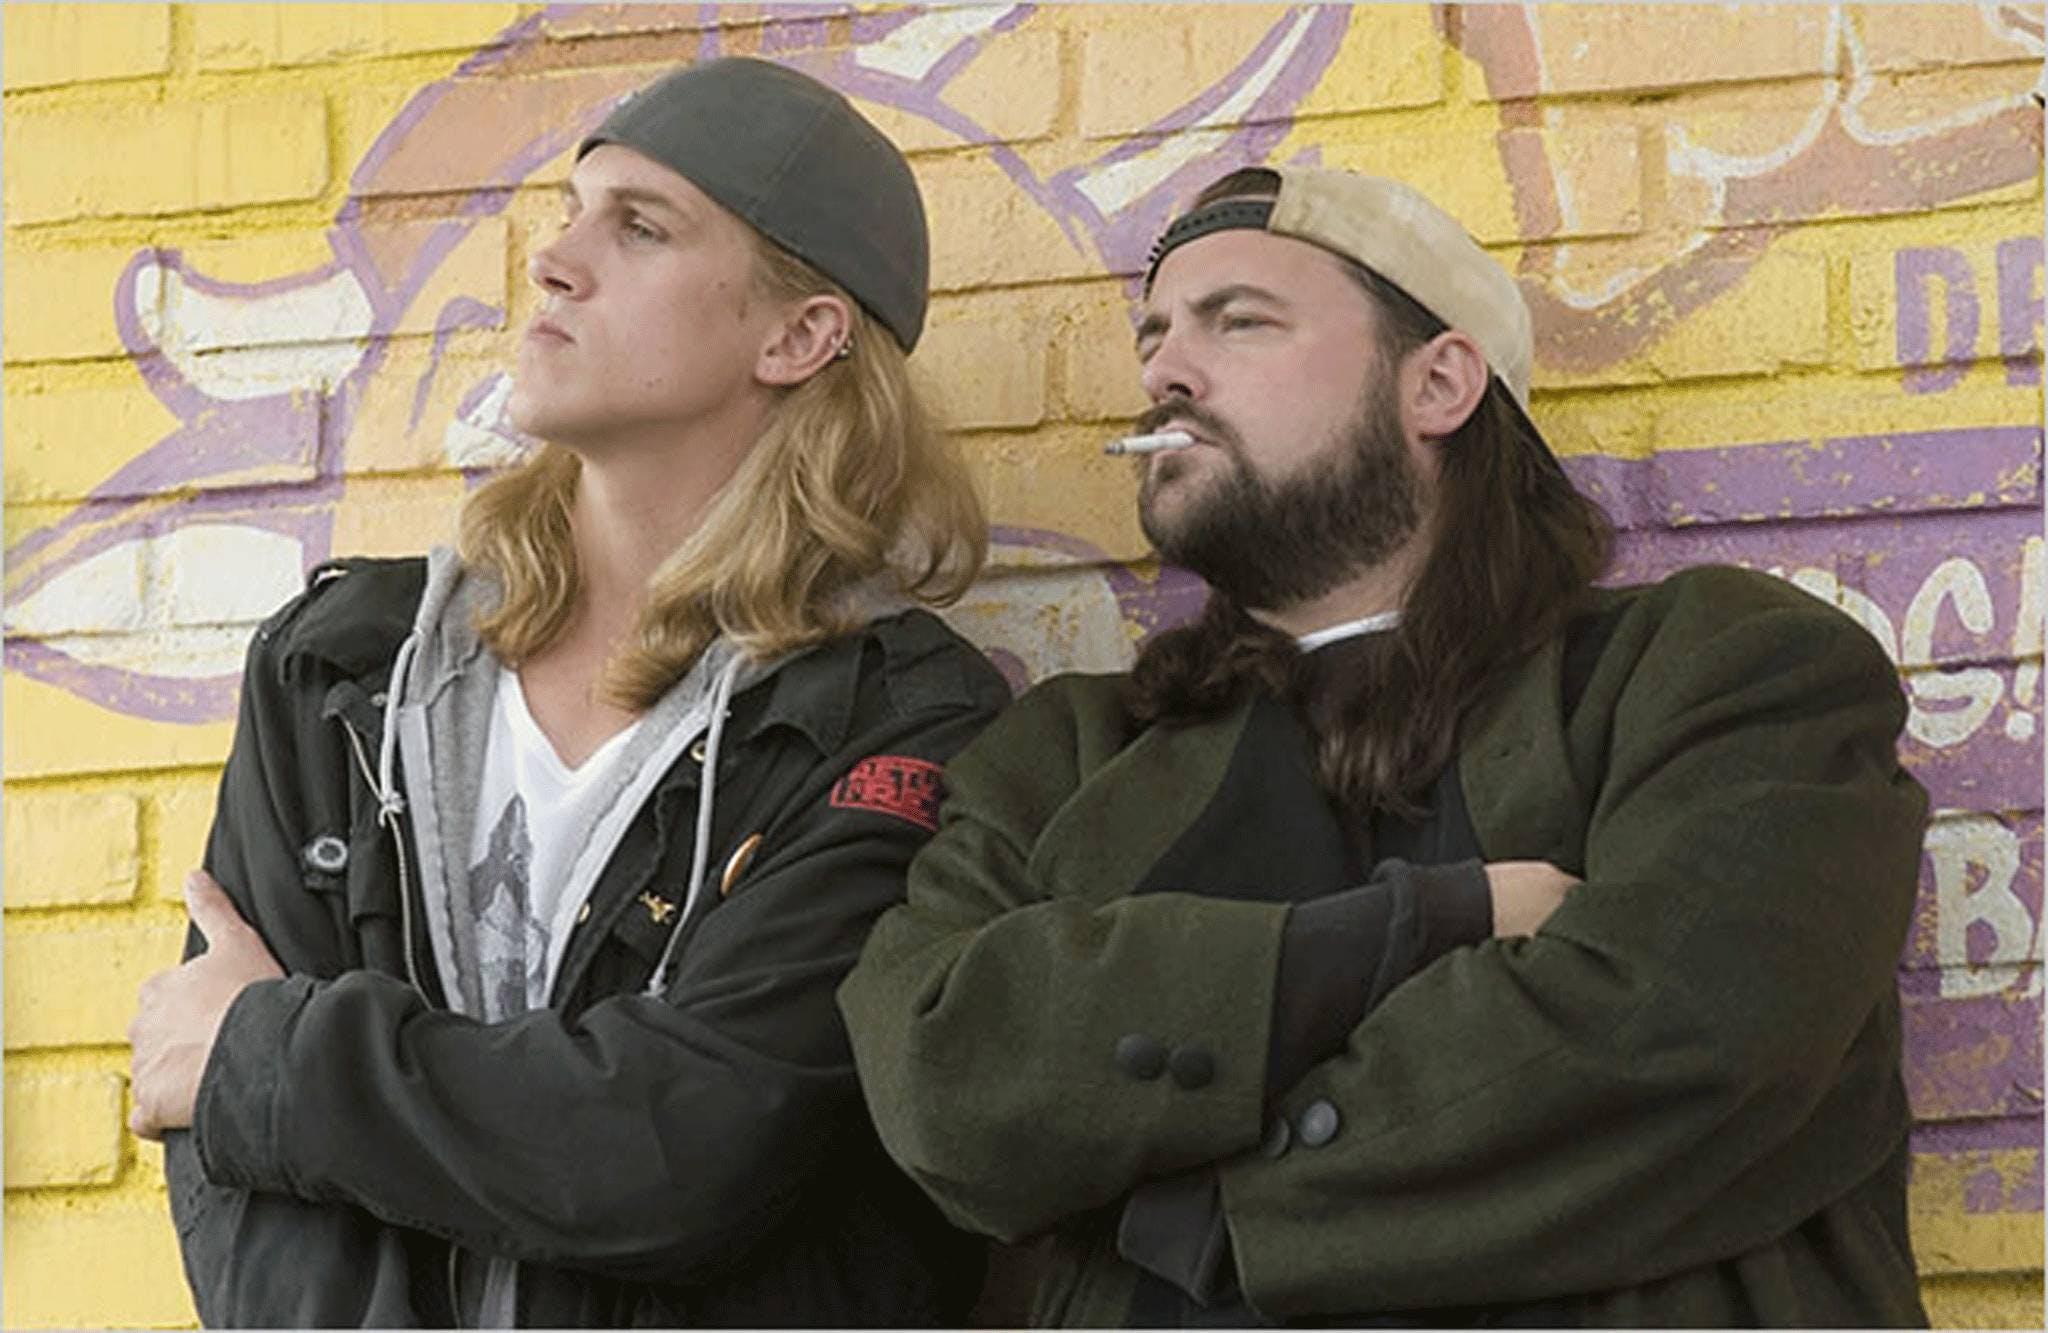 jay silent bob How do you explain your brain on drugs to someone whos never tried them? Visually of course.